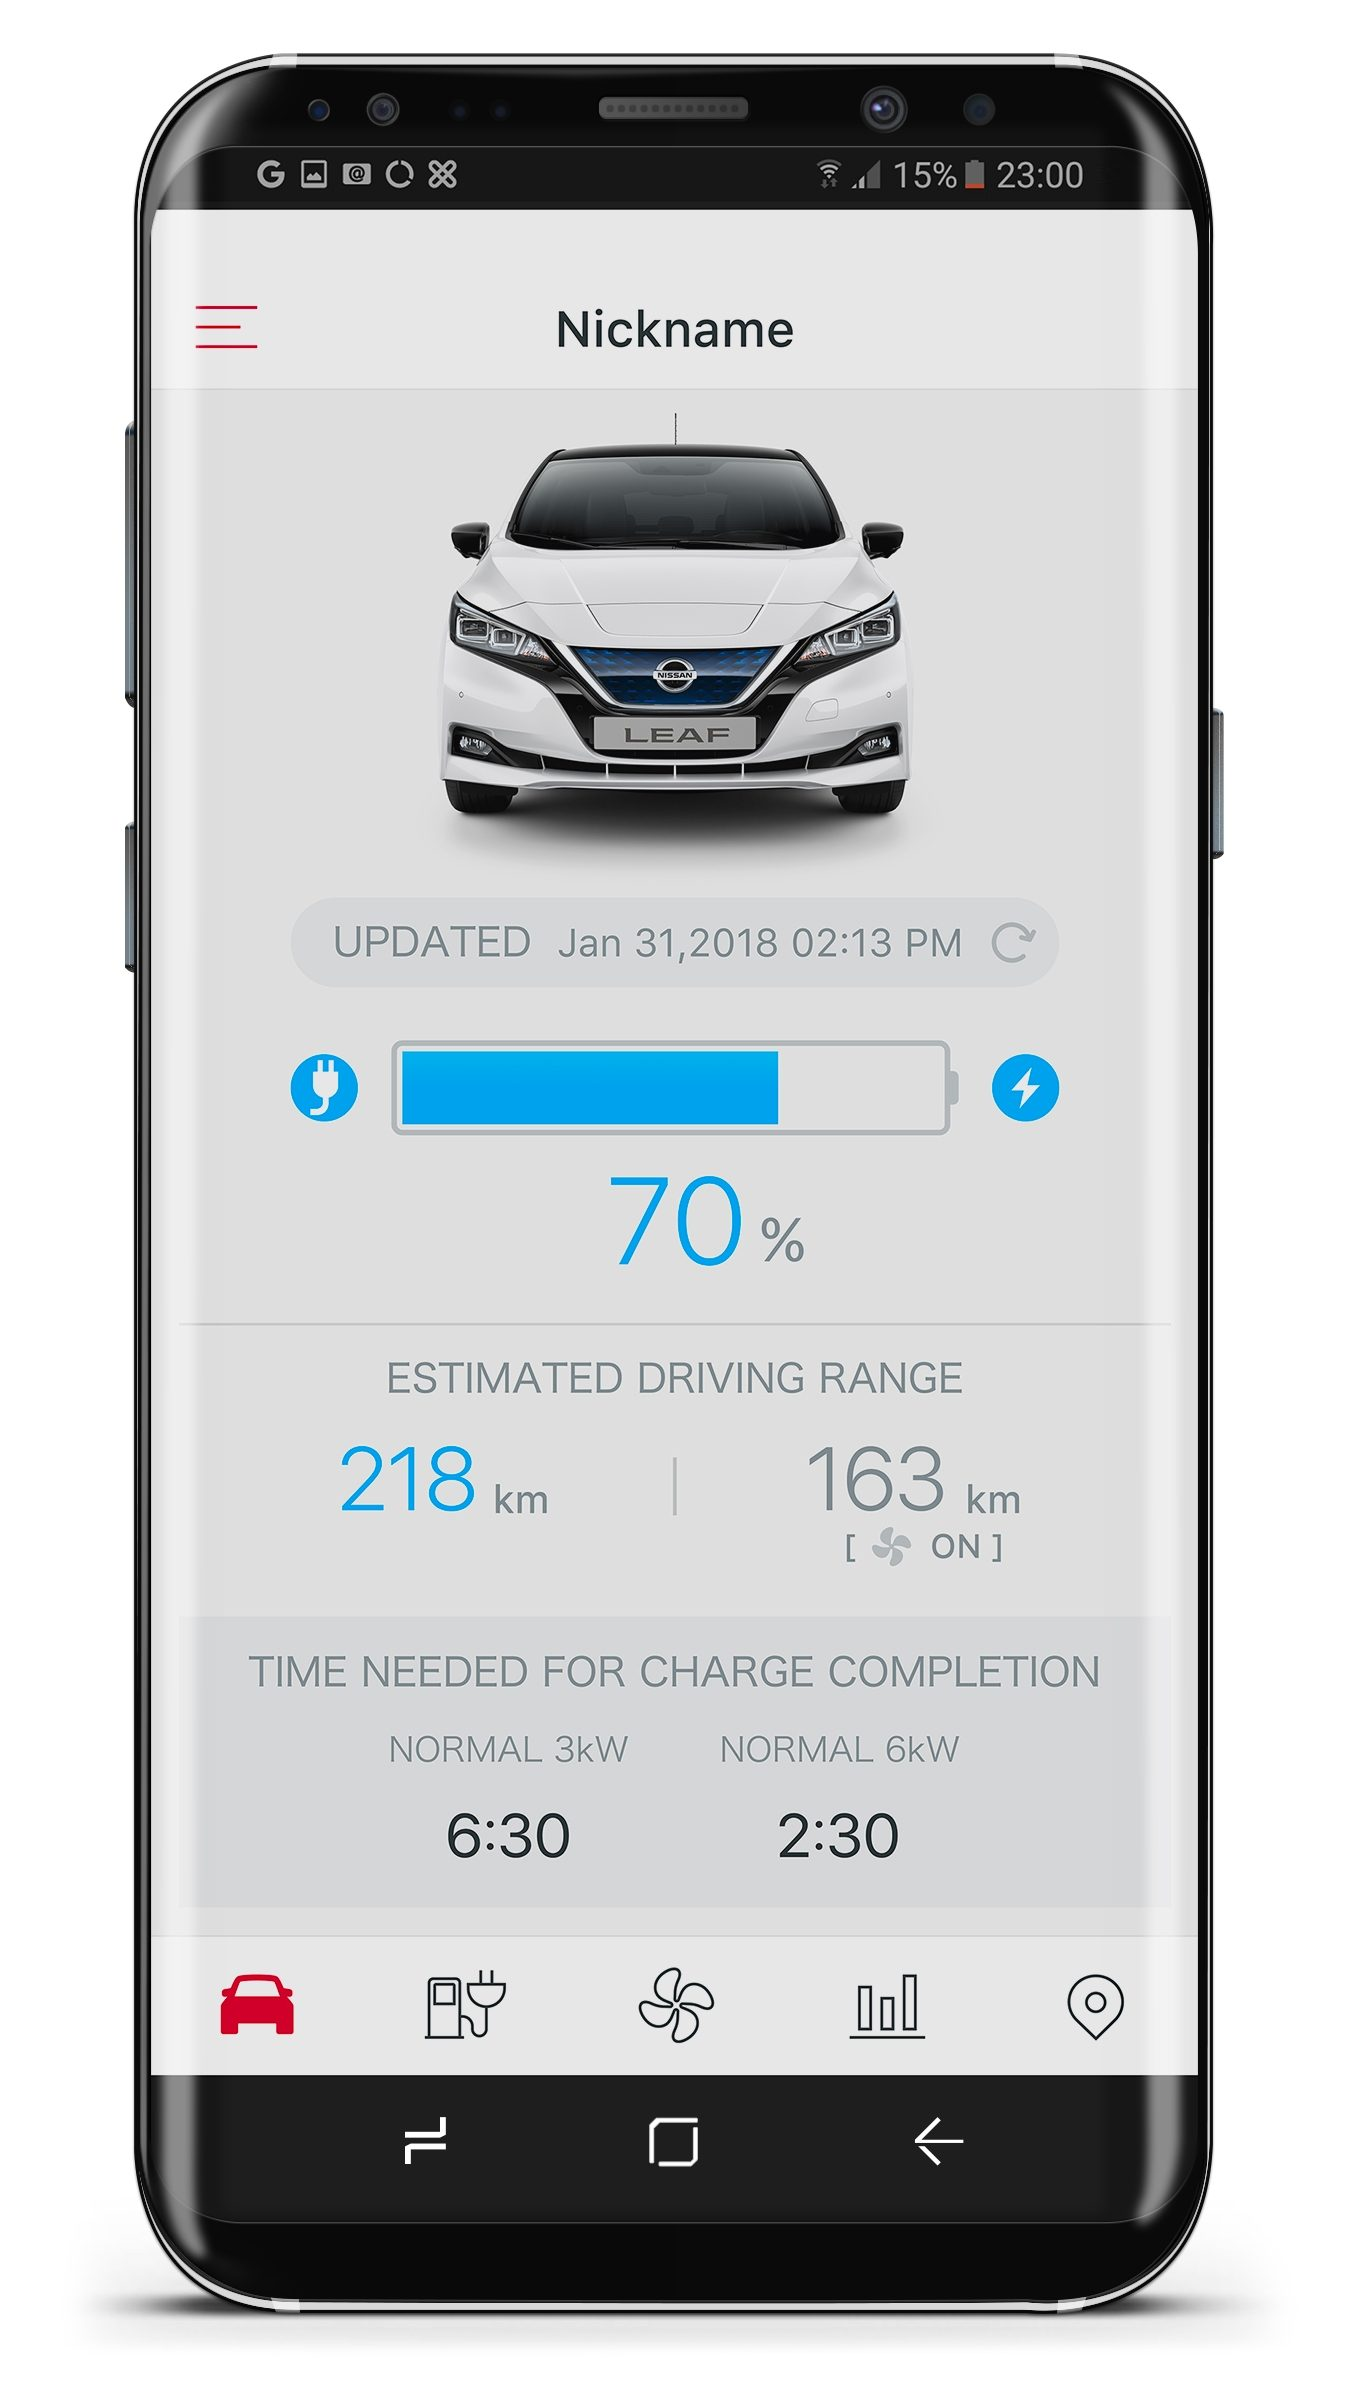 New Nissan LEAF NissanConnect EV app estimated driving range screen